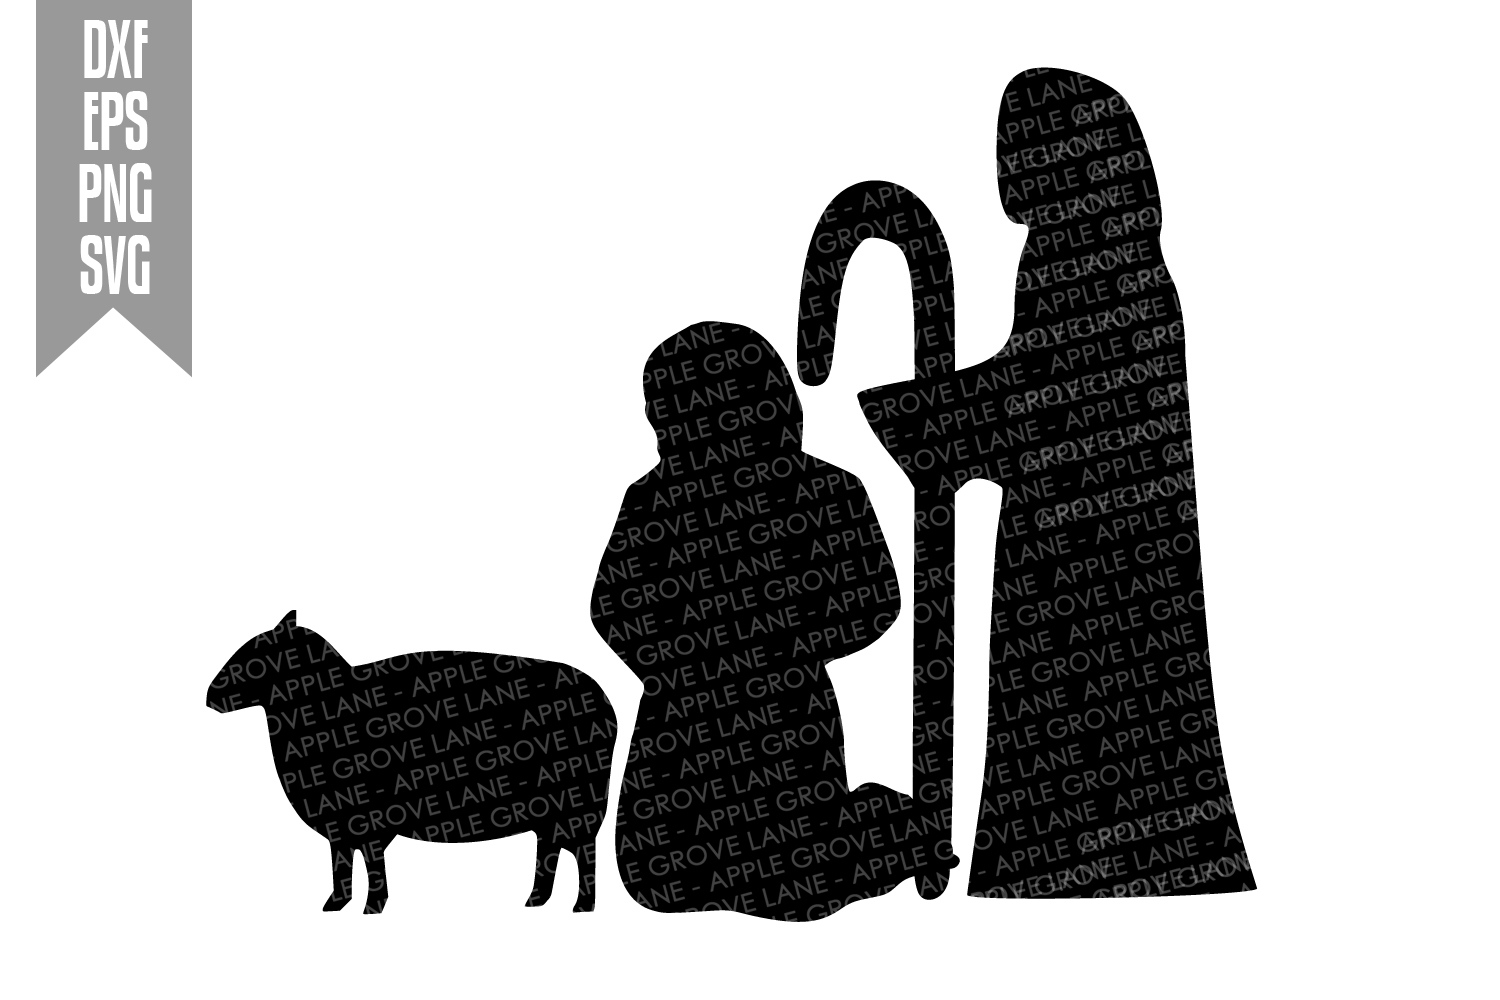 Nativity Svg Bundle - 9 designs included - Svg Cut Files example image 4